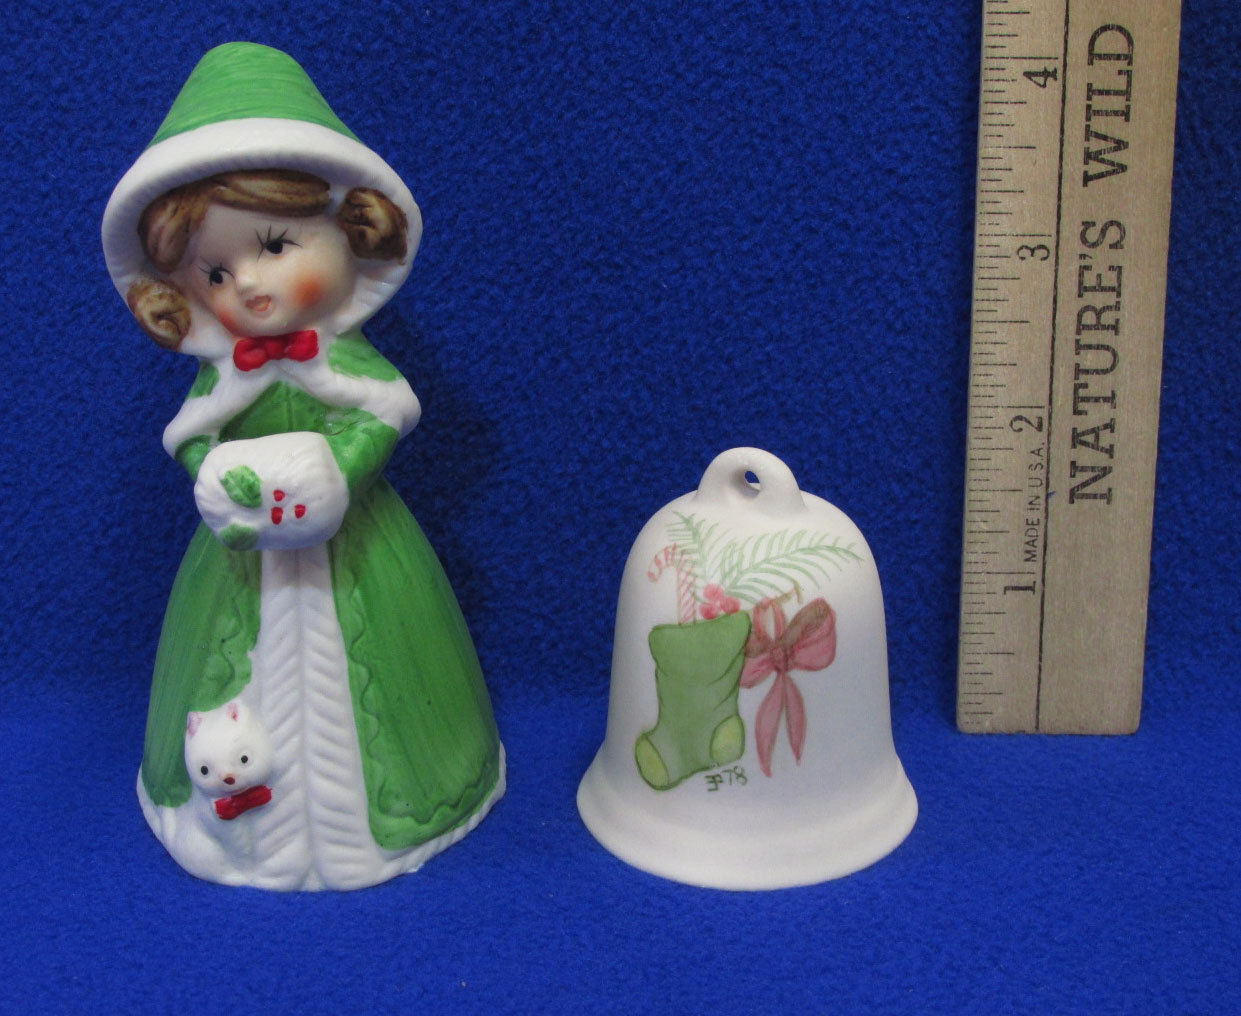 Vintage Christmas Bells Jasco Green Girl Ceramic & Green Stocking Lot of 2 - $9.89